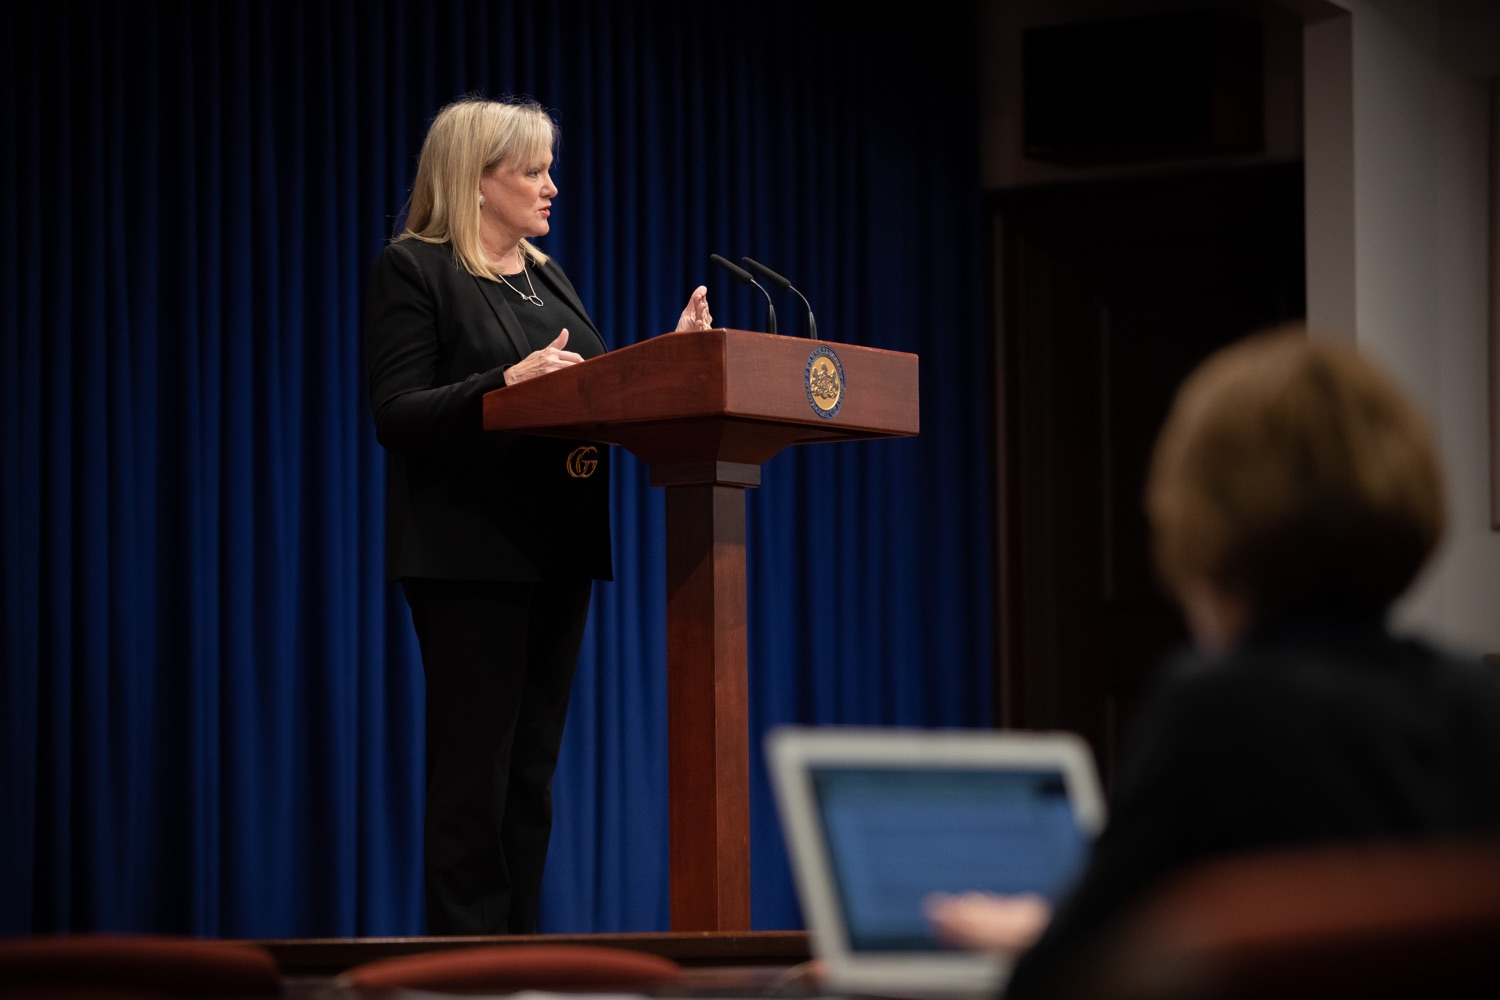 "<a href=""https://filesource.wostreaming.net/commonwealthofpa/photo/17725_dobs_investingwomen_dz_010.jpg"" target=""_blank"">⇣ Download Photo<br></a>Department of Banking and Securities Secretary Robin L. Wiessmann speaking at the announcement in the Capitol Media Center. Pennsylvania Department of Banking and Securities Secretary Robin L. Wiessmann today announced Investing in Women, an initiative aimed at providing women with important information about banking, credit, saving and investing, while offering practical resources to navigate their finances. The secretary was joined at a Capitol news conference by .Julie Bancroft, Chief Public Affairs Officer of the Pennsylvania Coalition Against Domestic Violence (PCADV).  .Harrisburg, PA - January 15, 2020."